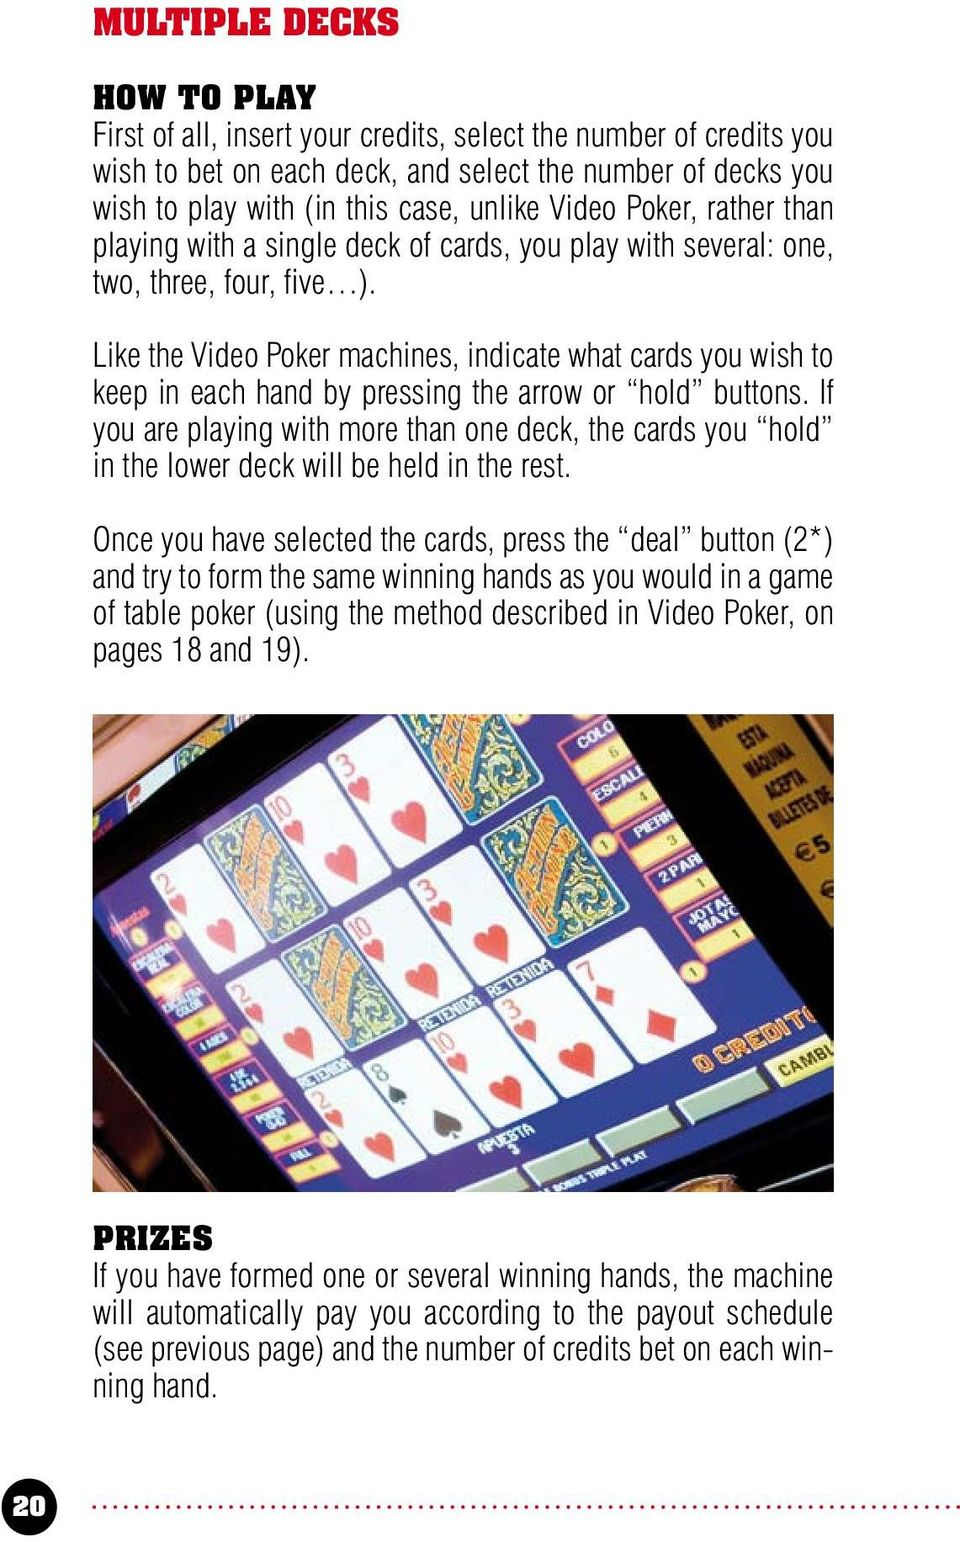 Like the Video Poker machines, indicate what cards you wish to keep in each hand by pressing the arrow or hold buttons.